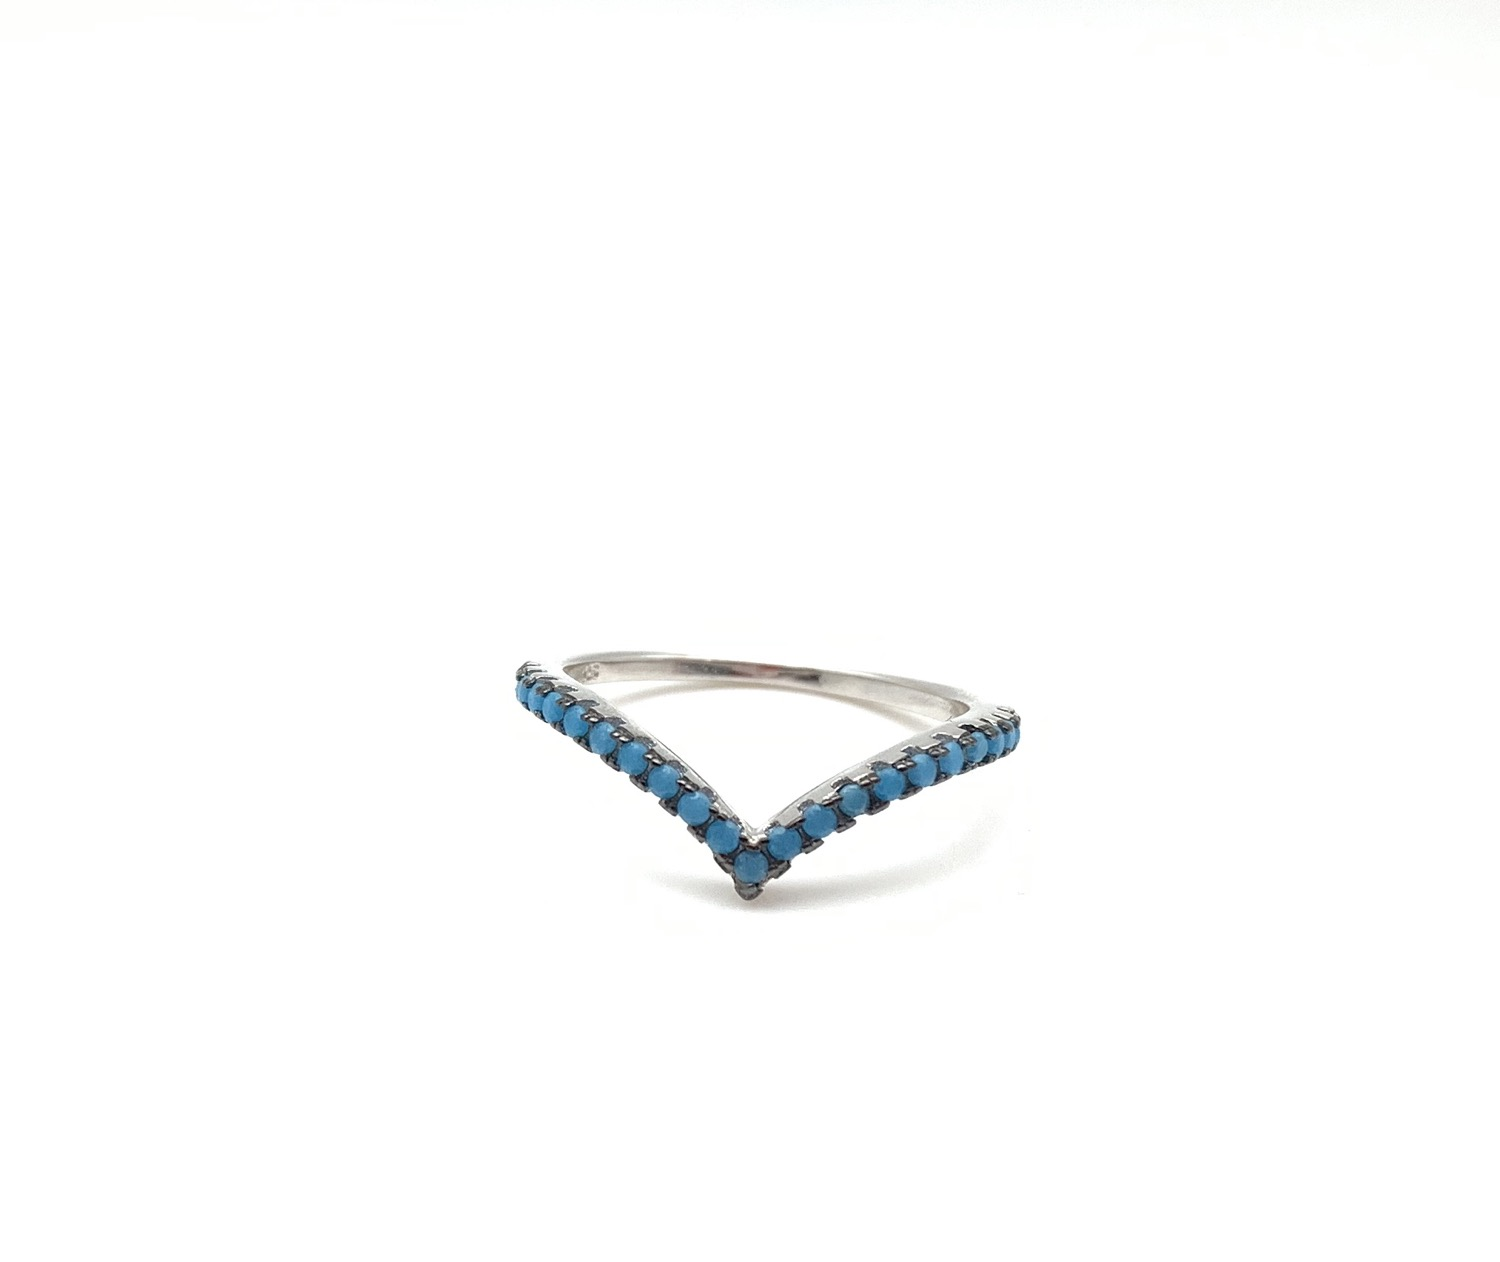 Thumbnail: SR1 Micro Turquoise Sterling Silver Wave Ring, Size 5, 6, 7, 8, 9, 10